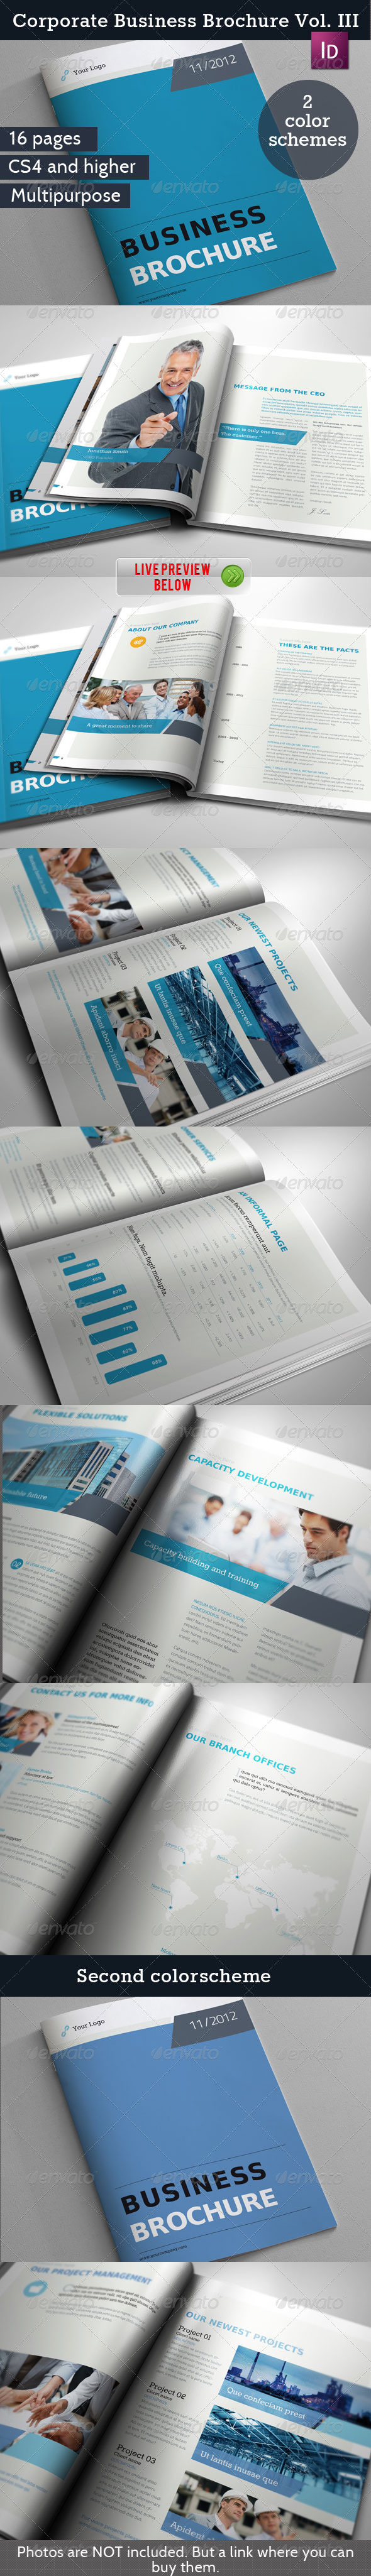 GraphicRiver Corporate Business Brochure Vol III 3342208